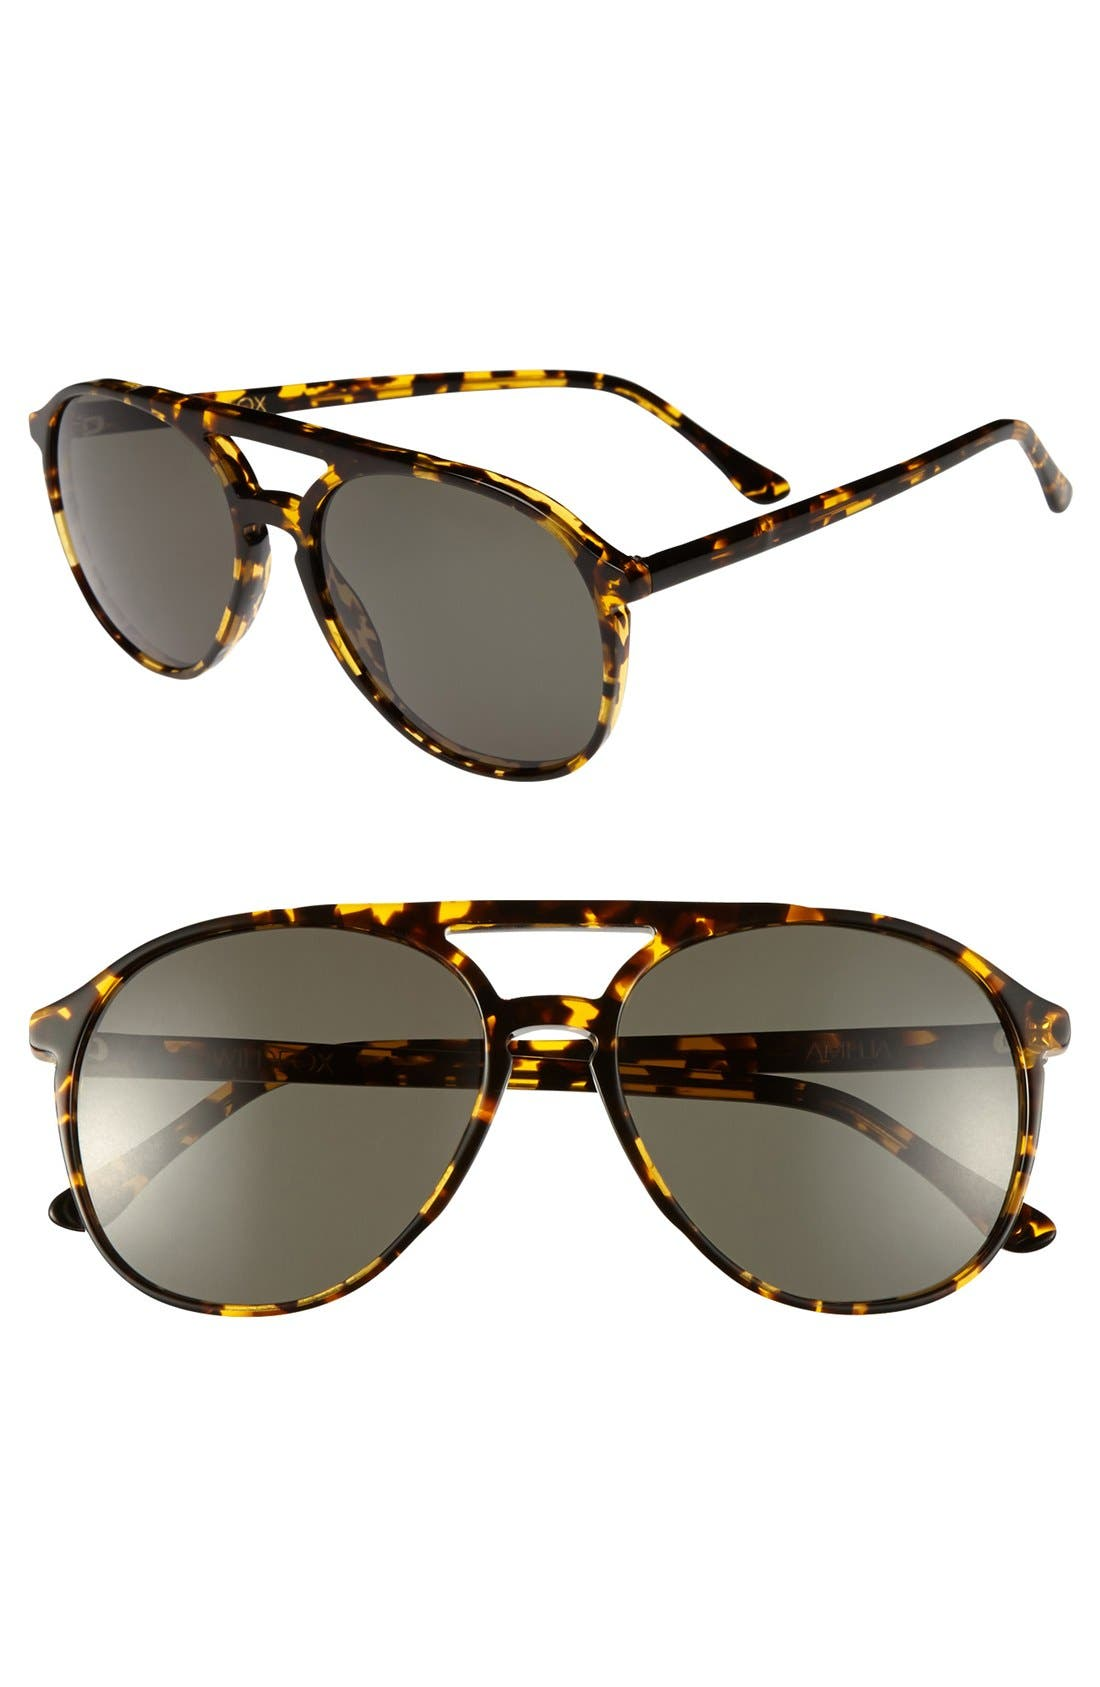 Main Image - Wildfox 'Amelia' Sunglasses